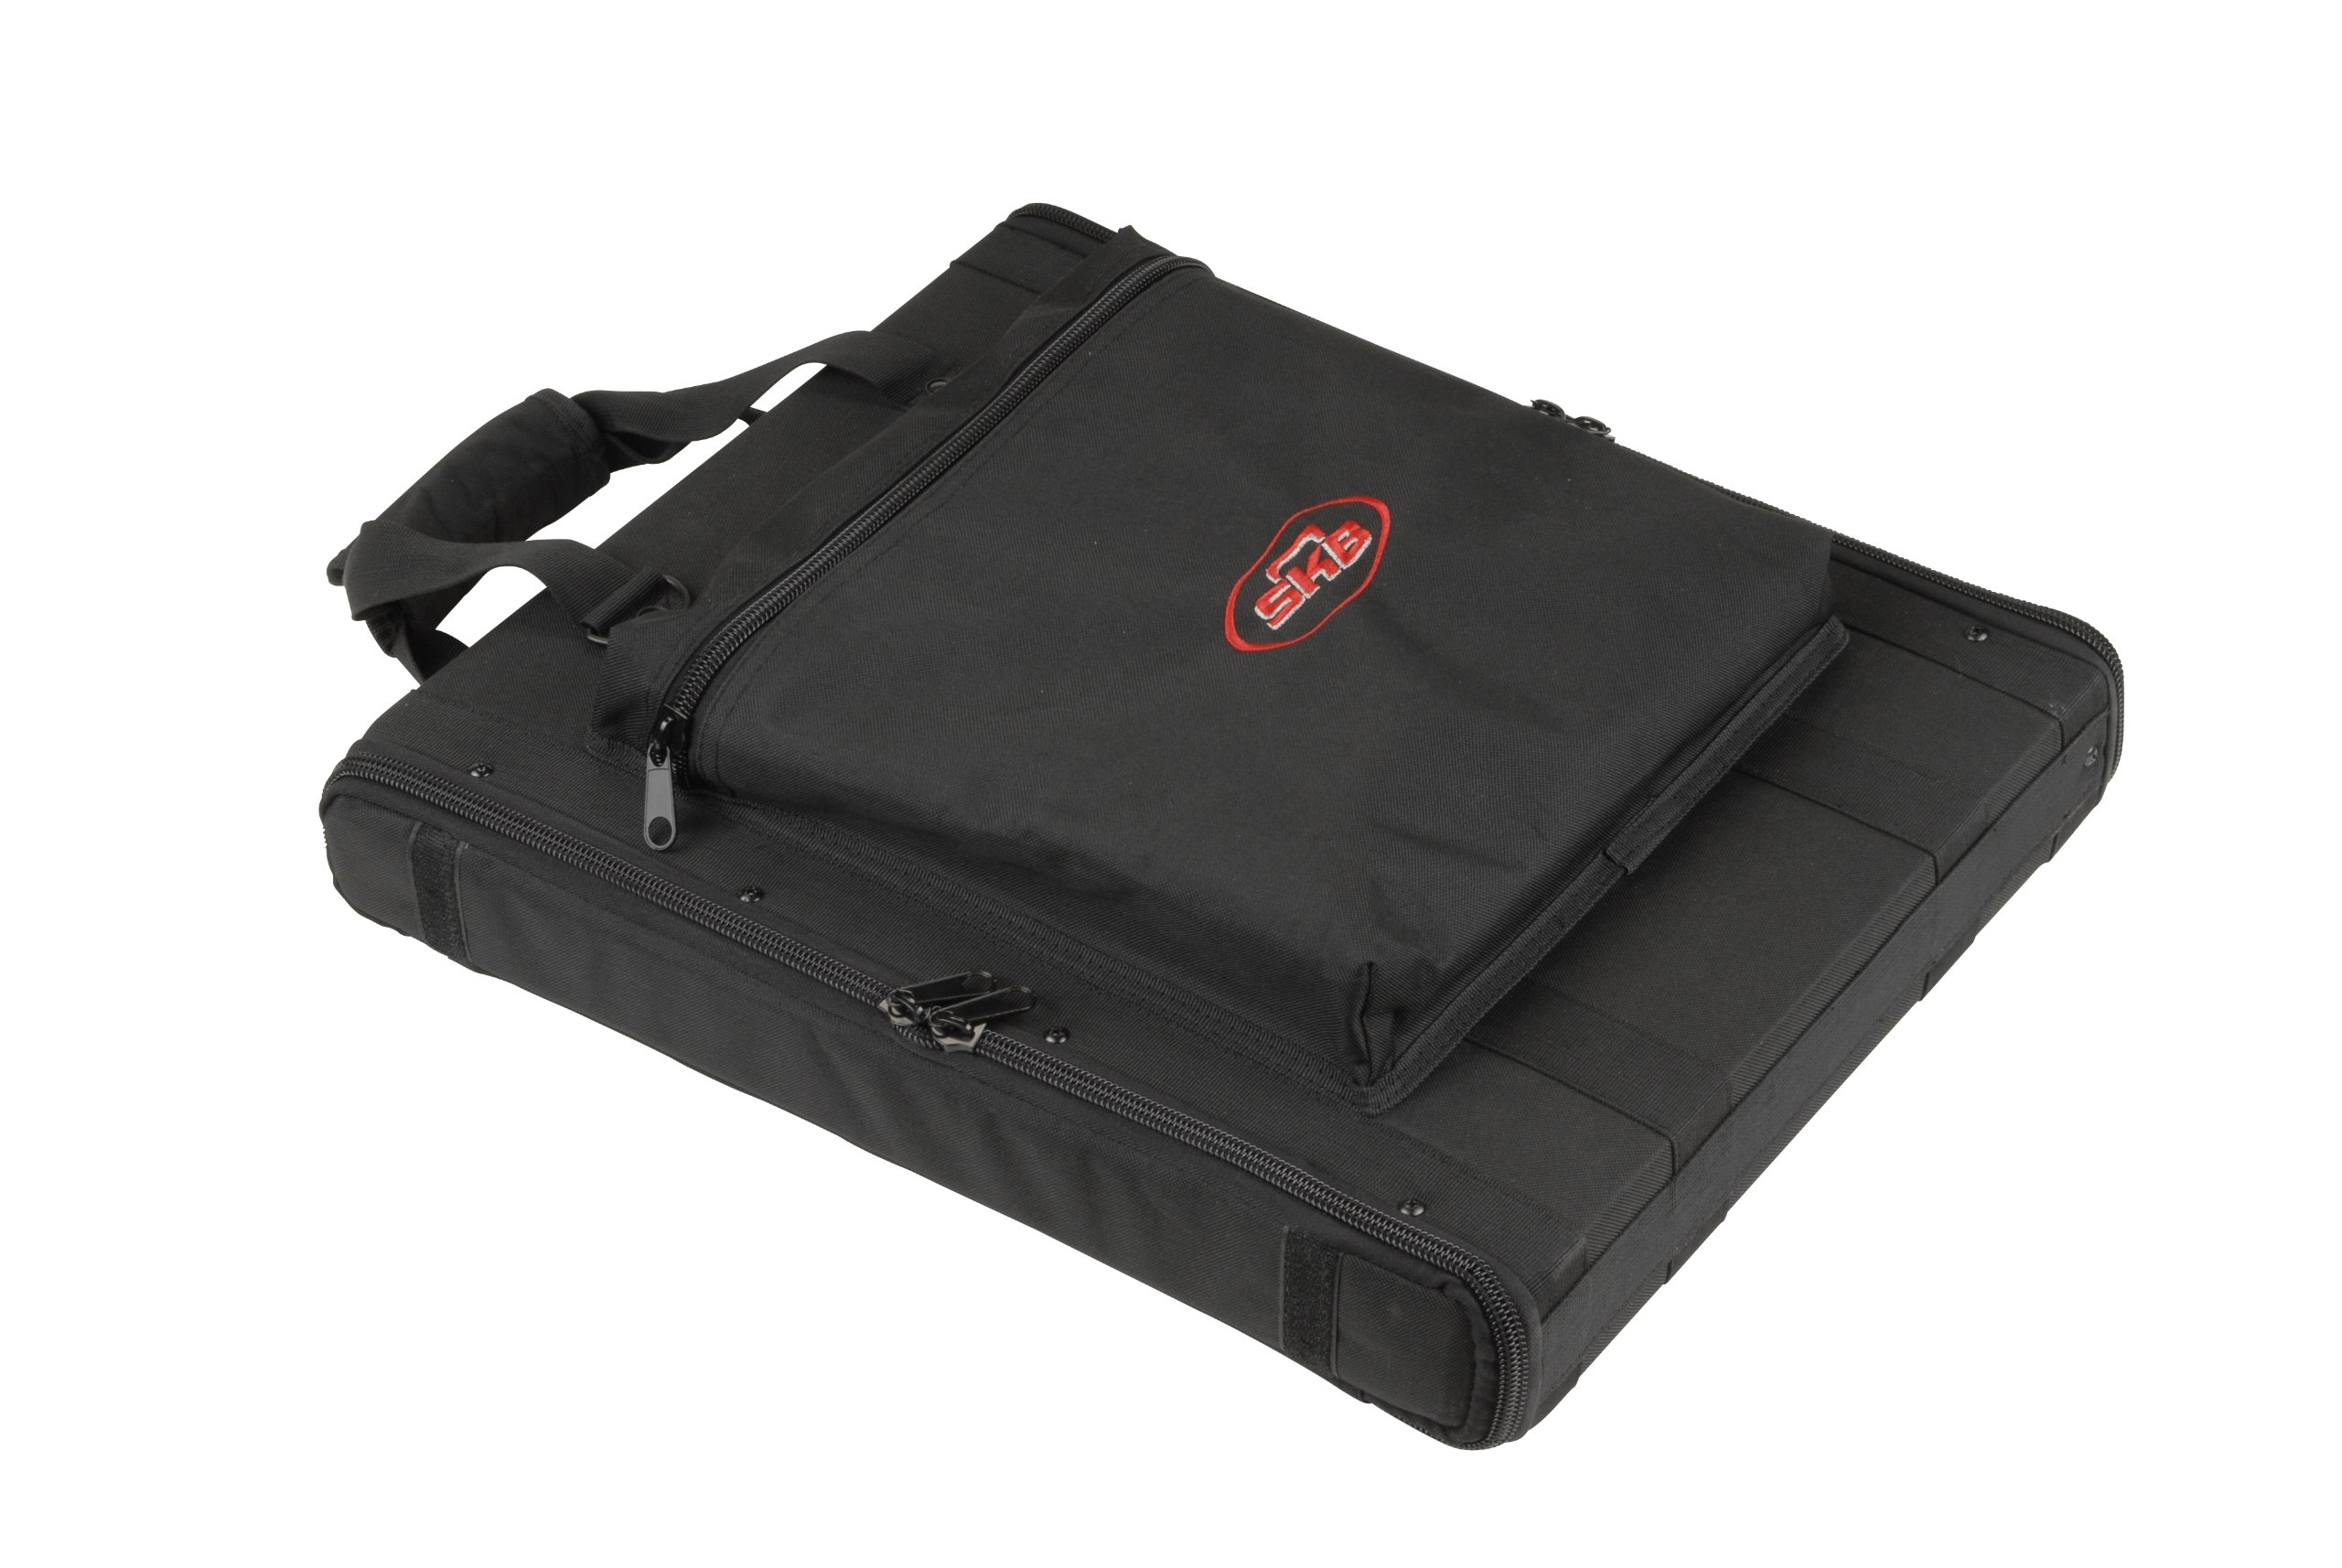 SKB 1U Soft Rack Case, Steel Rails, Heavy Duty zippers, outer pocket, Shoulder straps by SKB